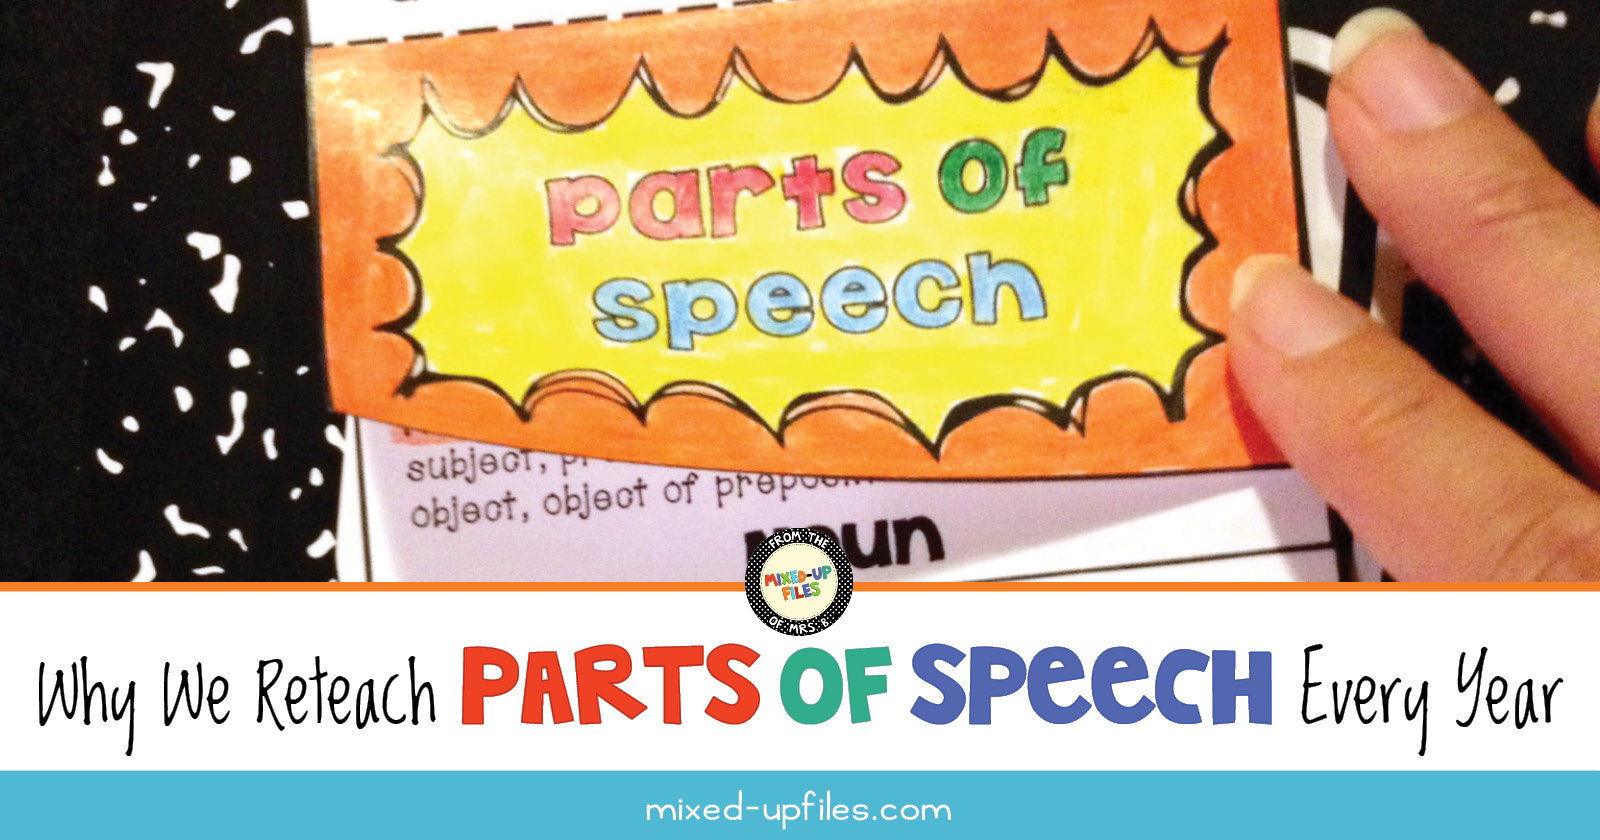 Why We Reteach Parts of Speech Every Year